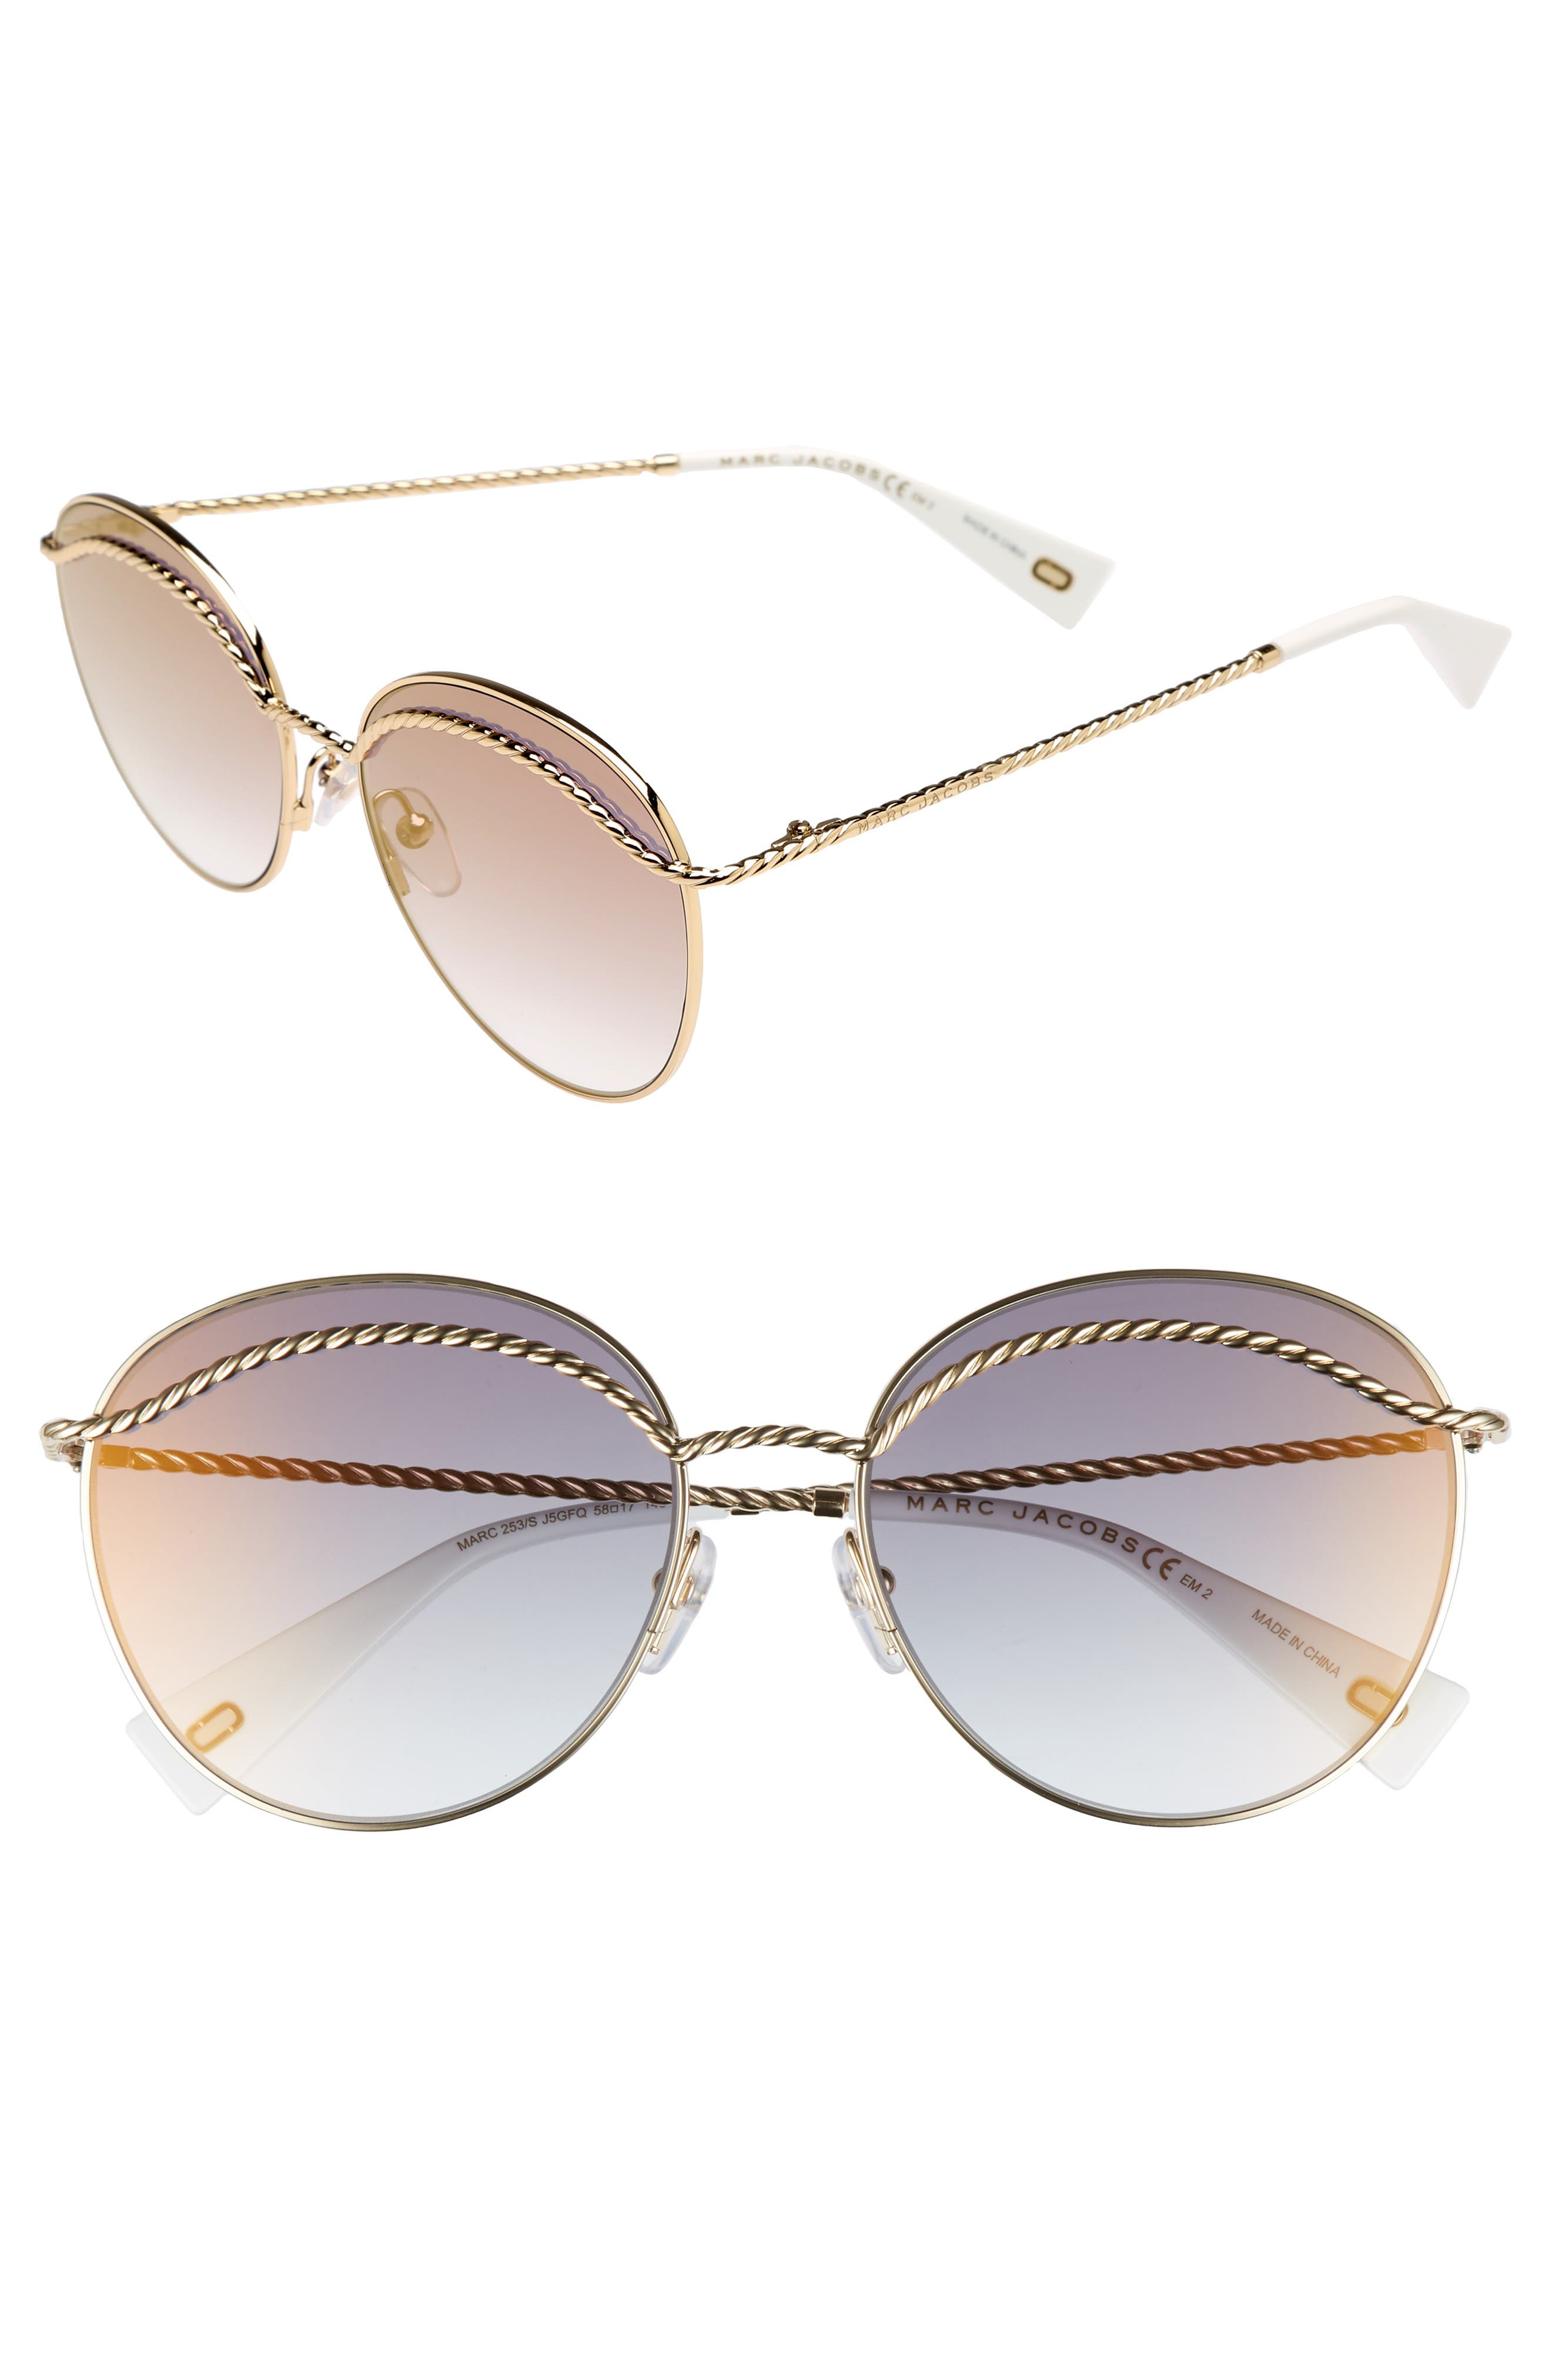 58mm Round Sunglasses by Marc Jacobs